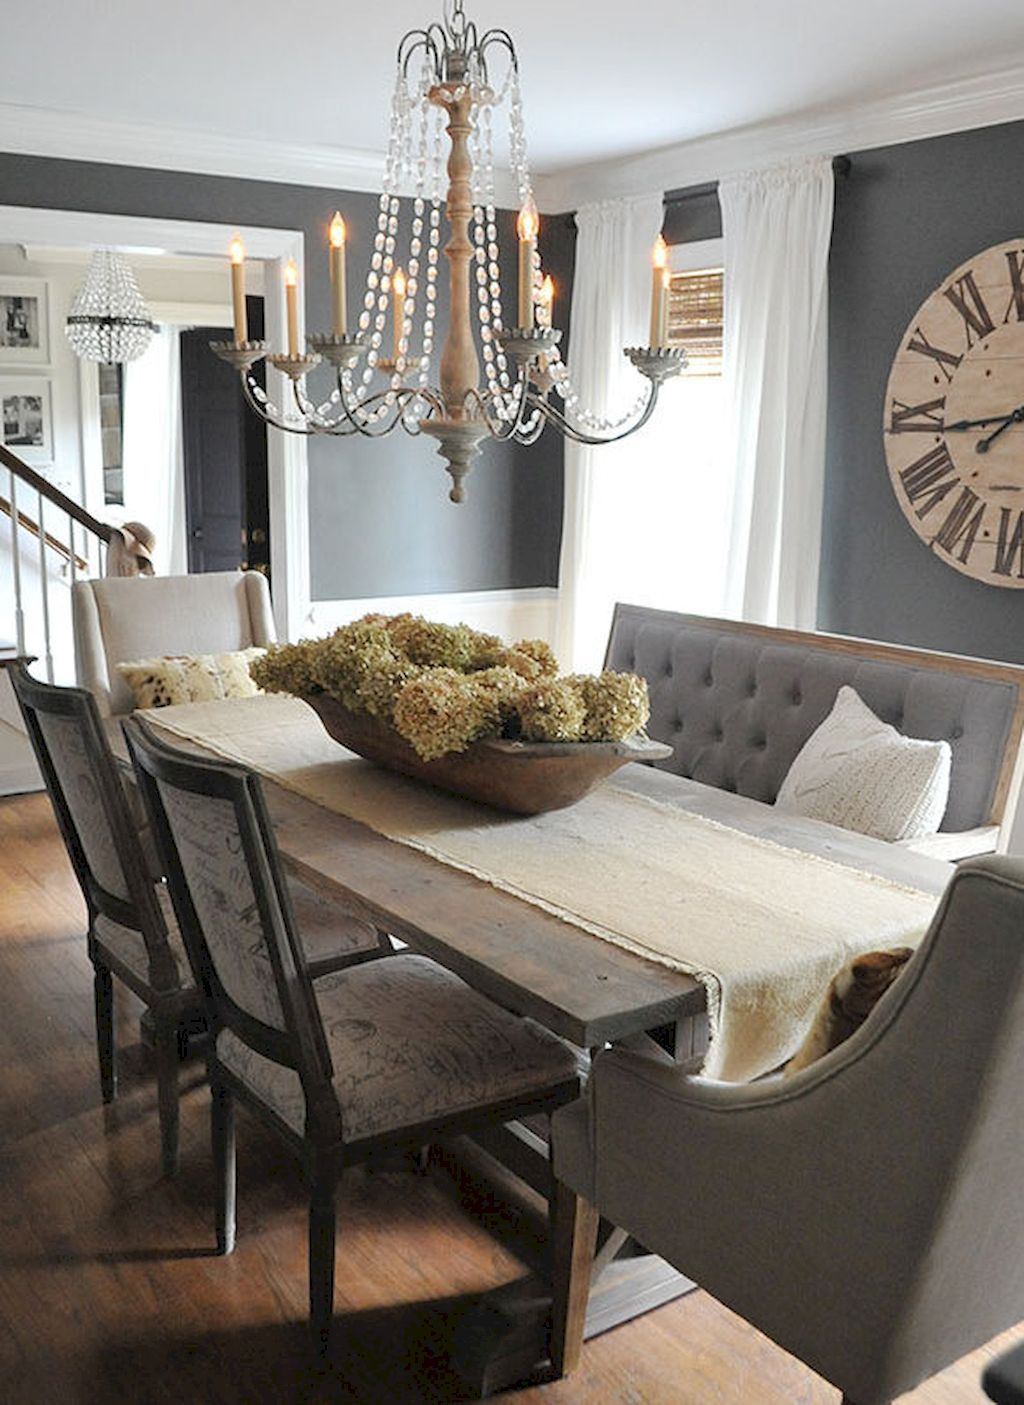 50 Lasting Farmhouse Dining Room Table Decor Ideas is part of Modern Table decor - 50 Lasting Farmhouse Dining Room Table Decor Ideas November 29, 2017admin Leave a Comment We are absolutely positive that current interior design trends are slowly inching towards styles that firmly bring back a soothing and simple 'old world cha